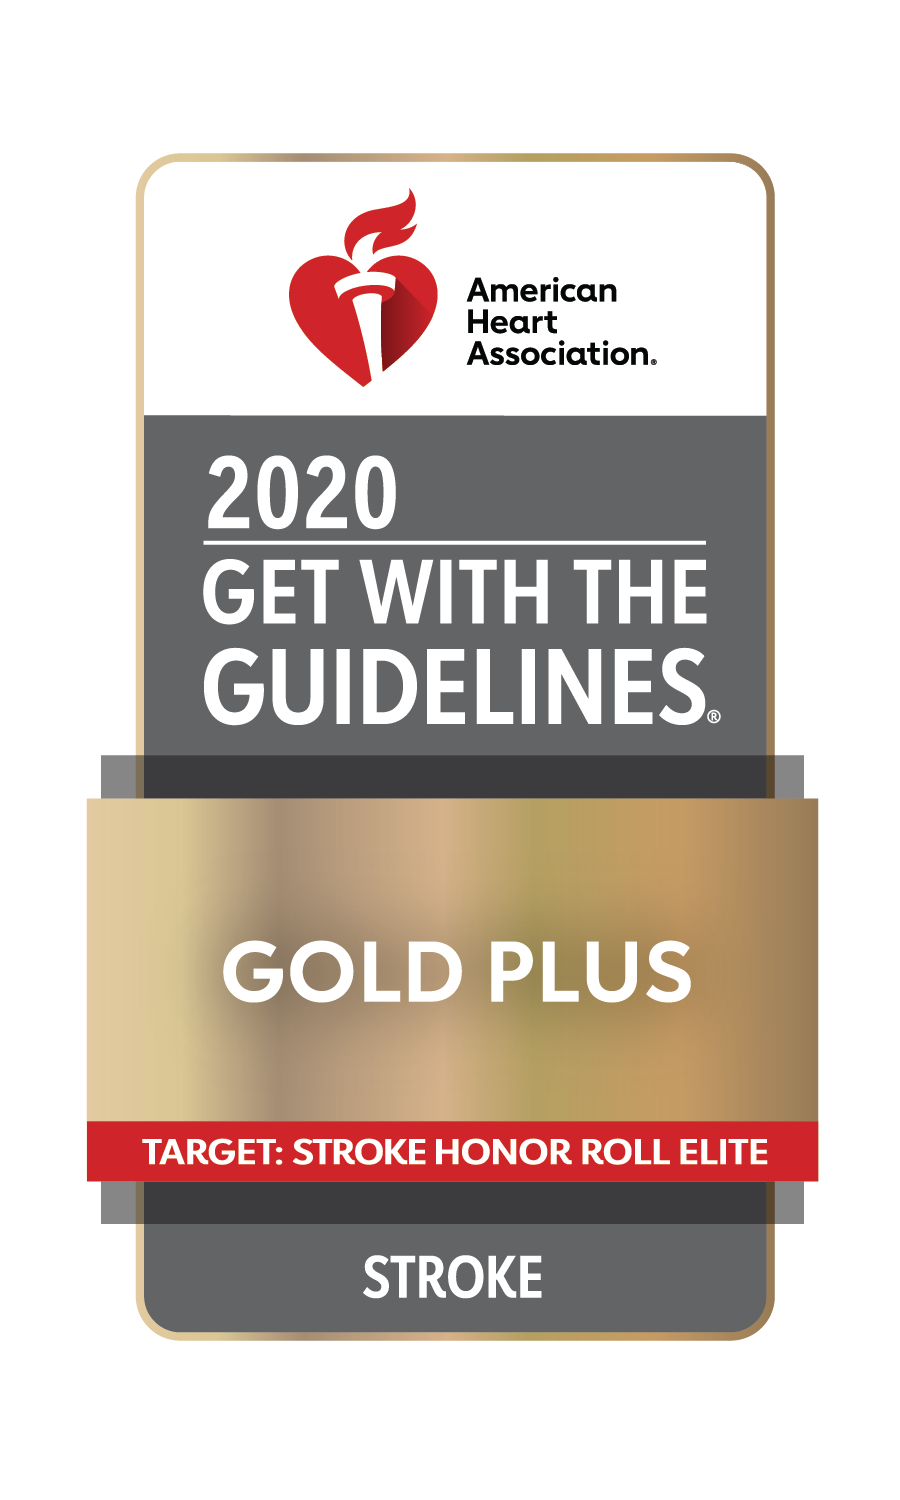 Get With The Guidelines - Stroke Gold Plus Quality Achievement Award